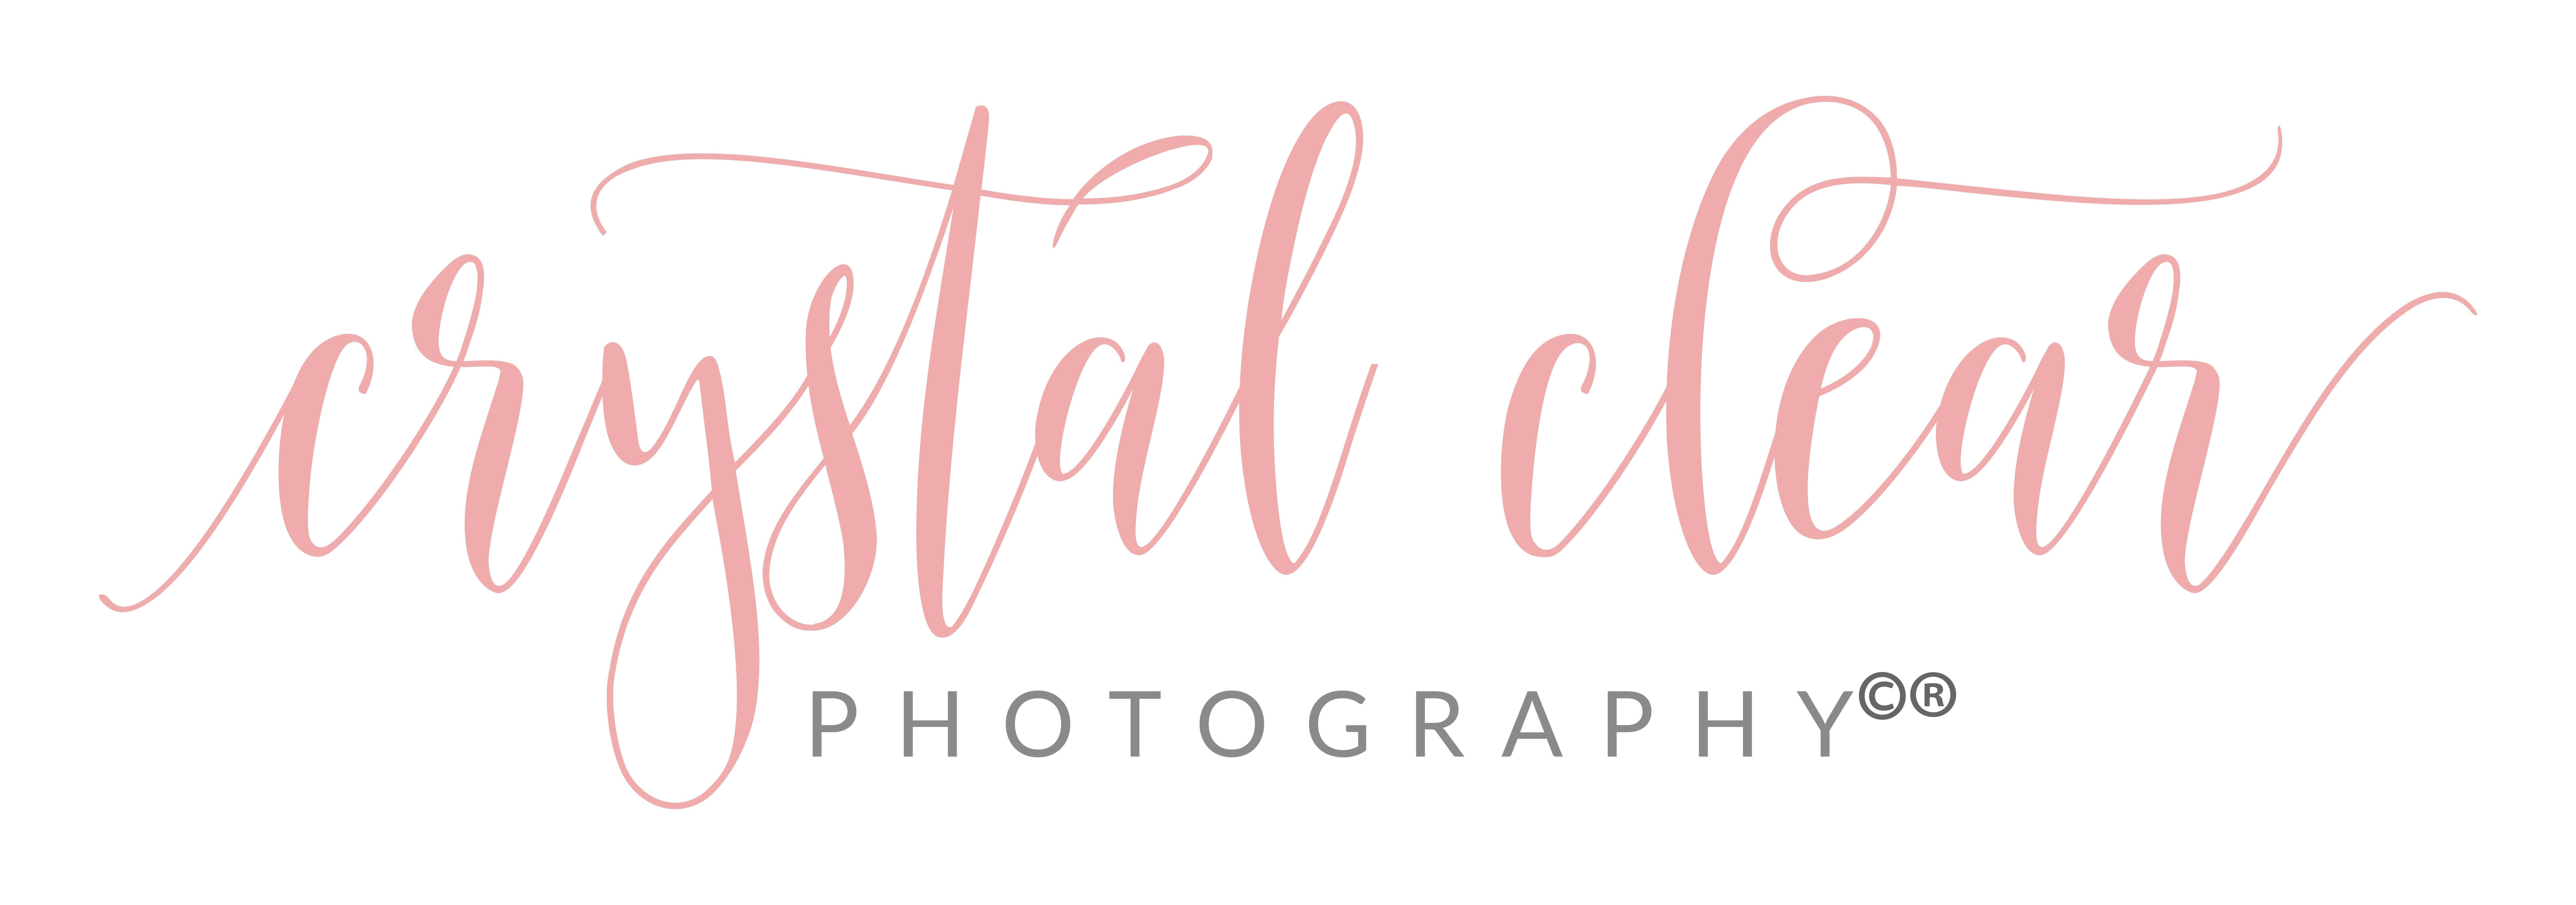 Crystal Clear Photography Courses